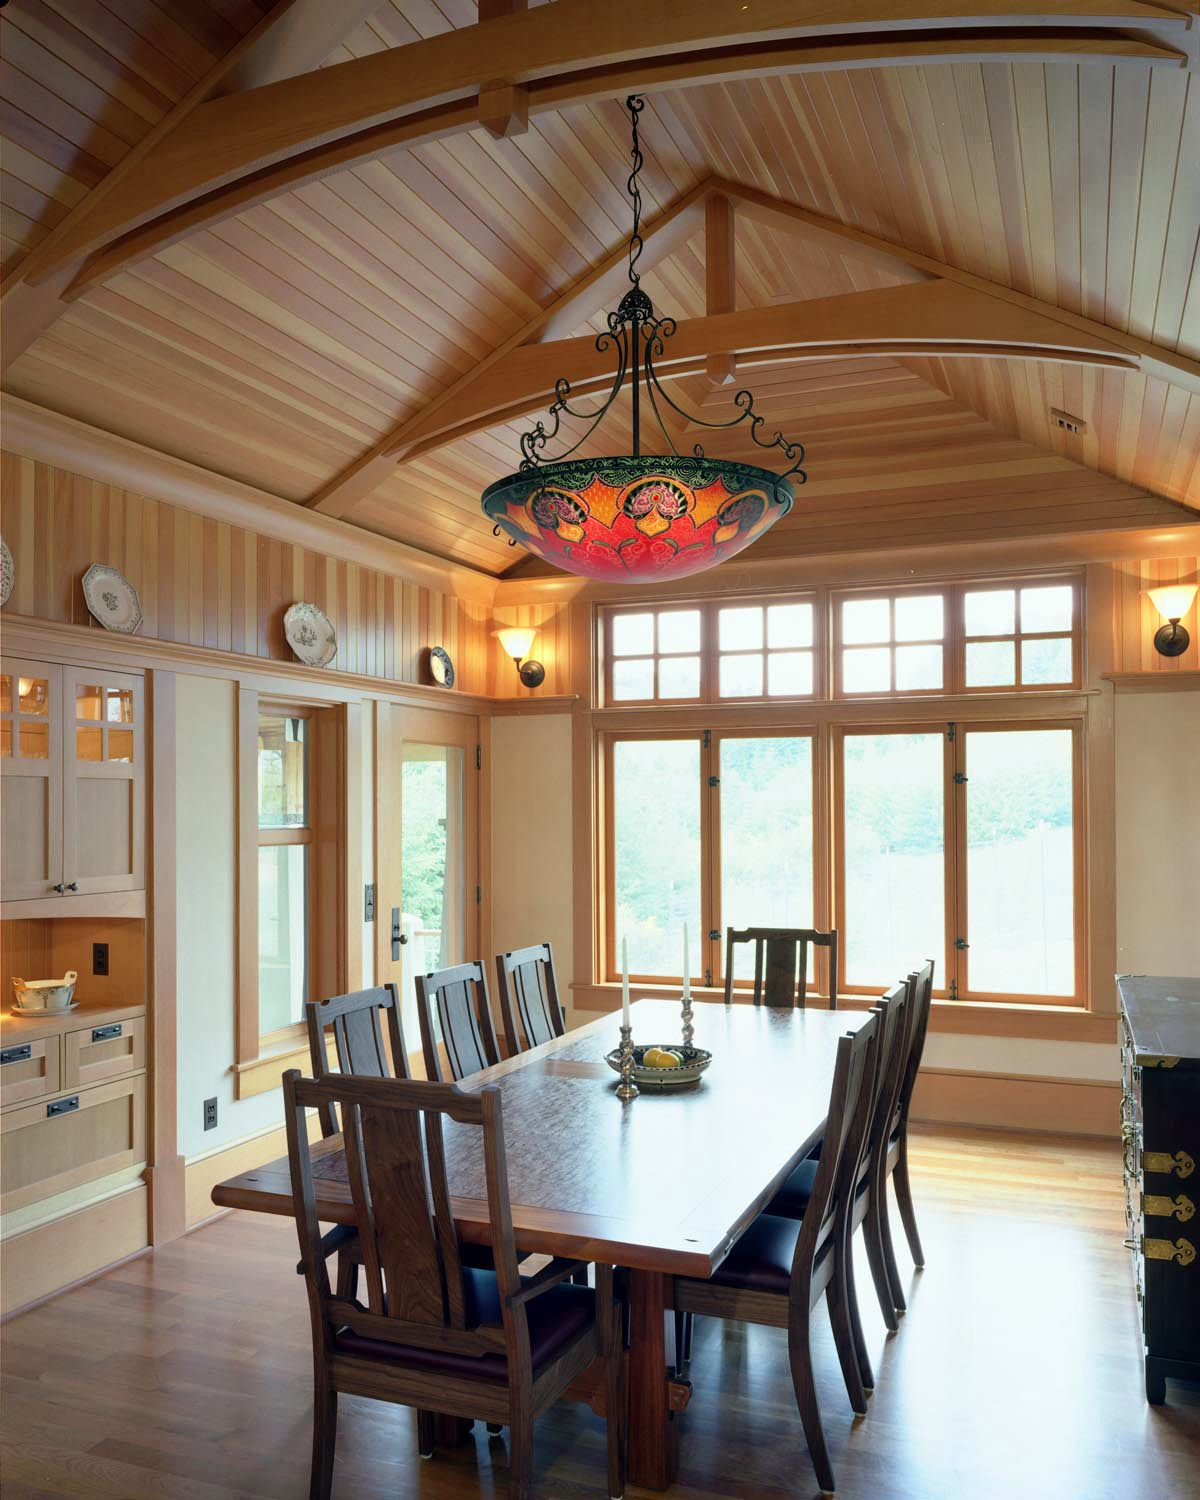 Wooden arches in dining room craftsman also wood ceiling ideas rh pinterest